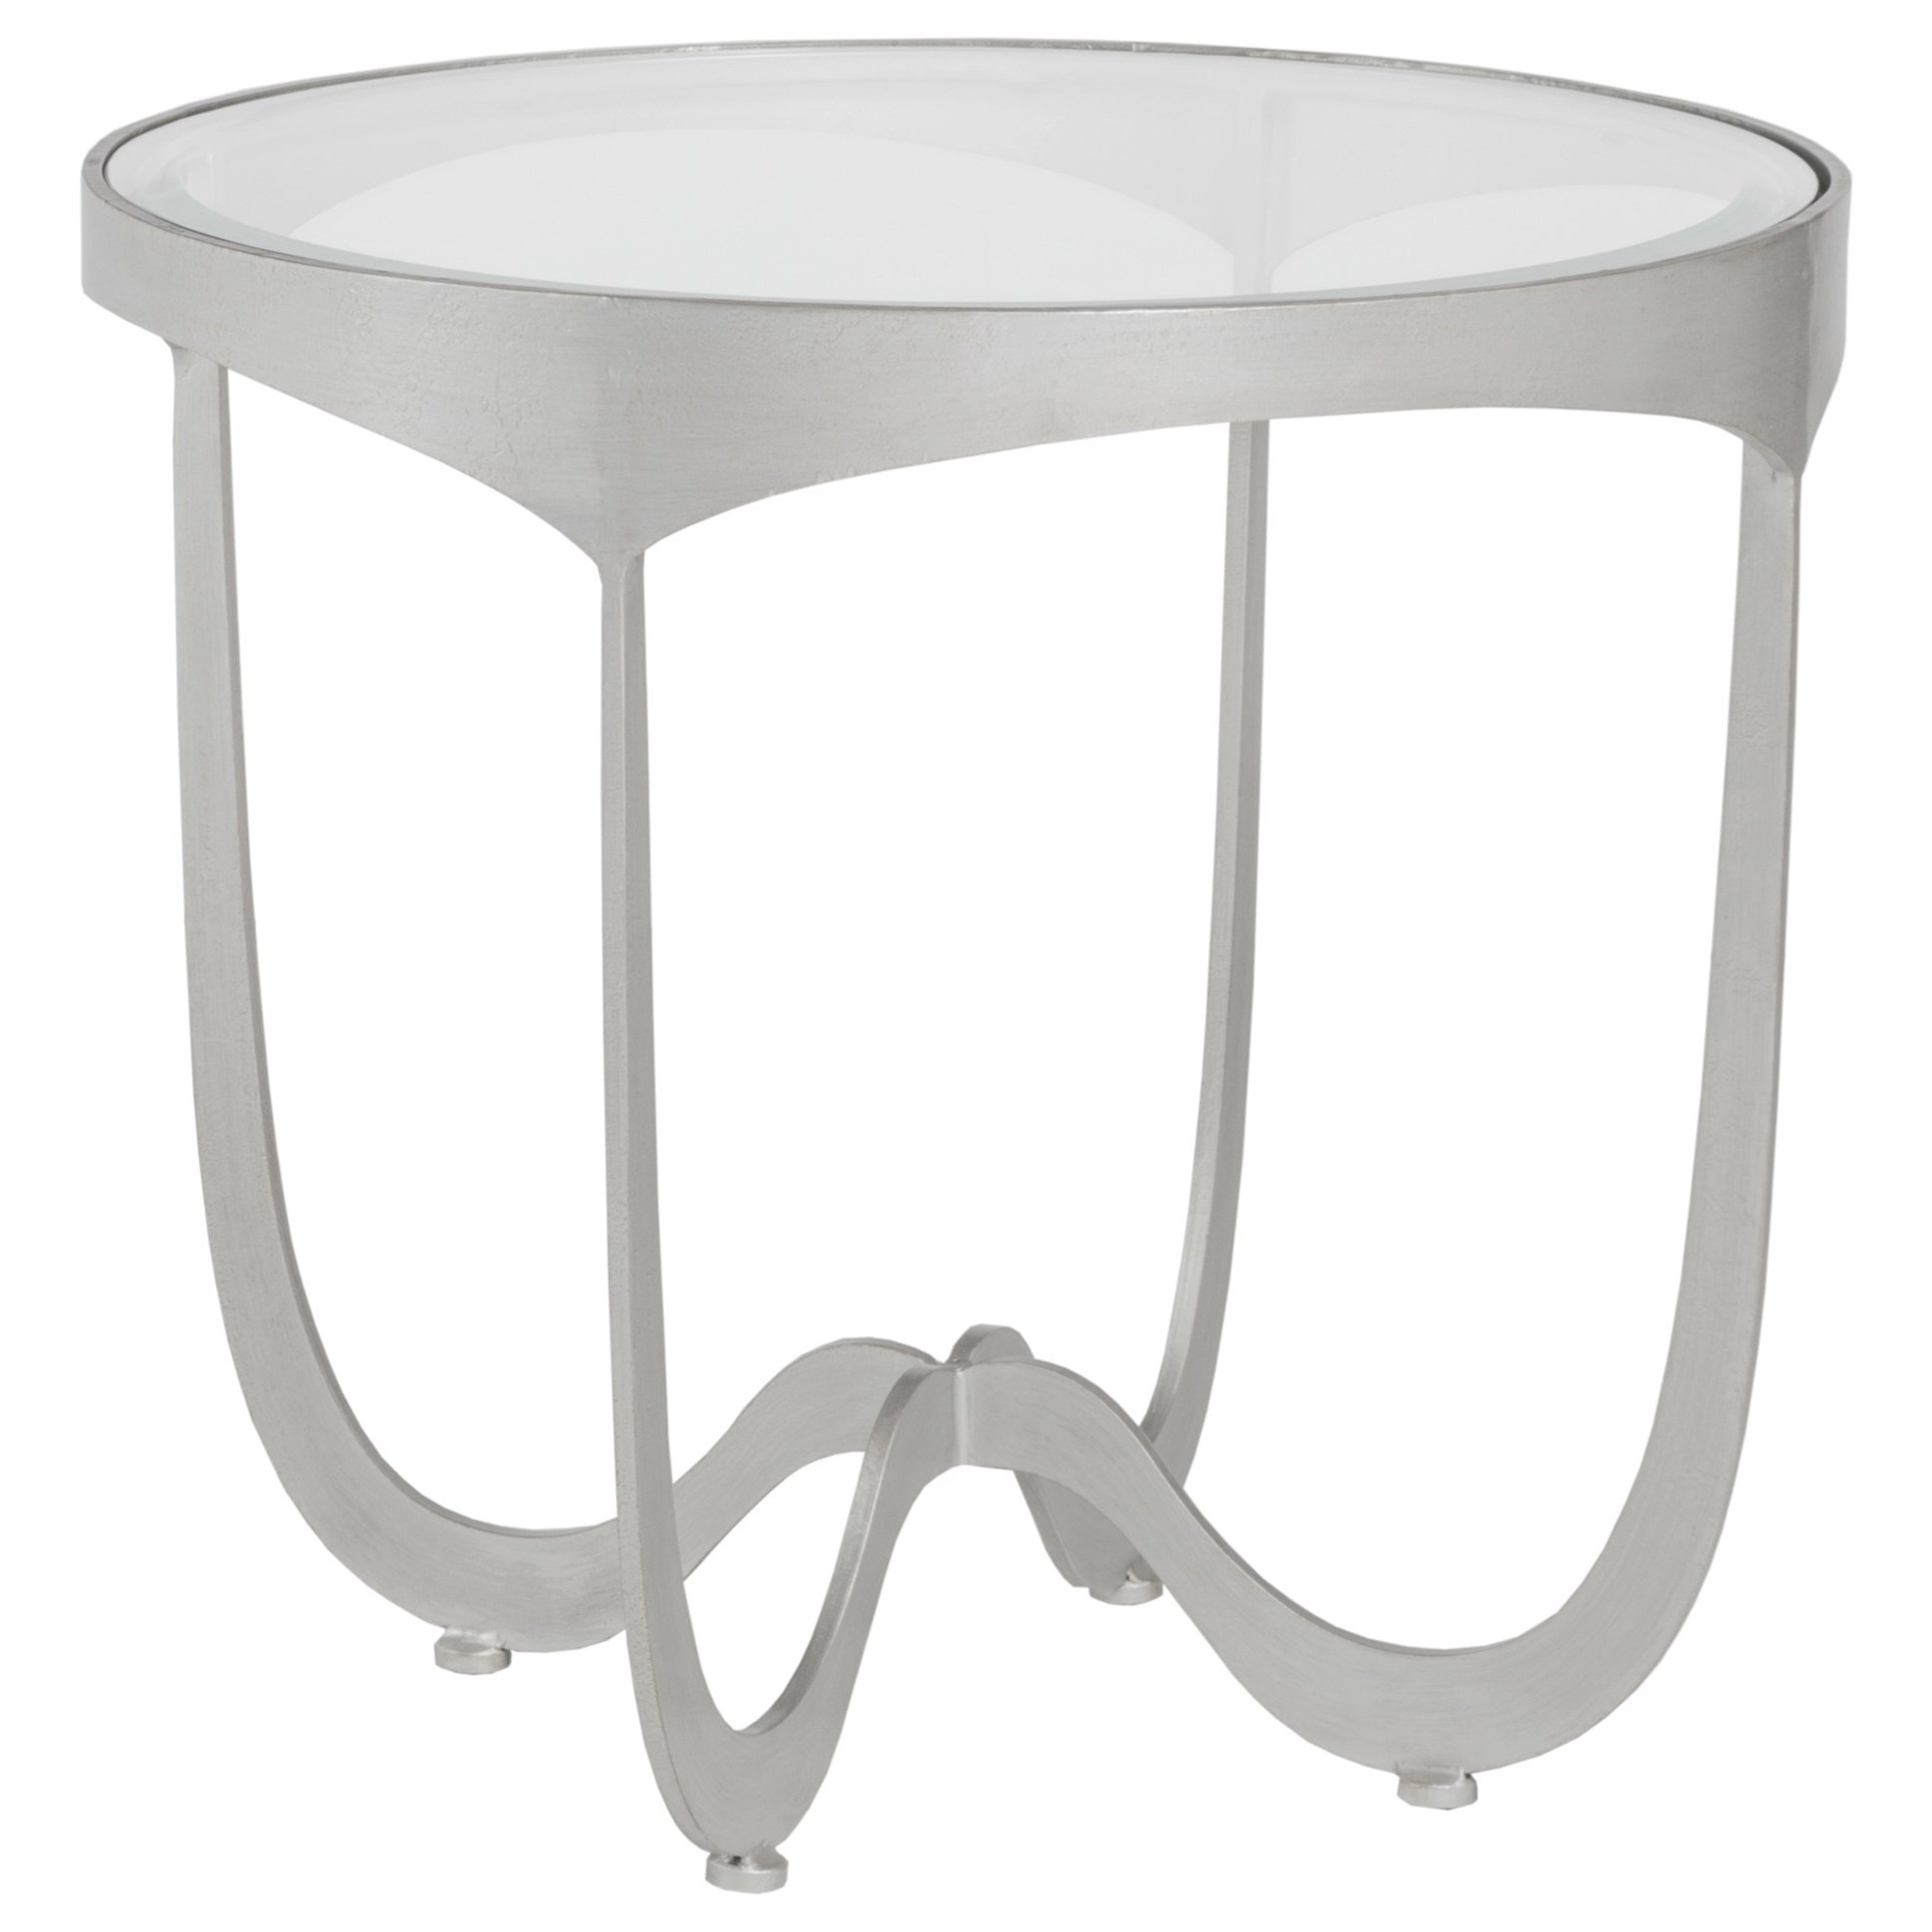 Metal Designs Sophie Round End Table by Artistica at Alison Craig Home Furnishings